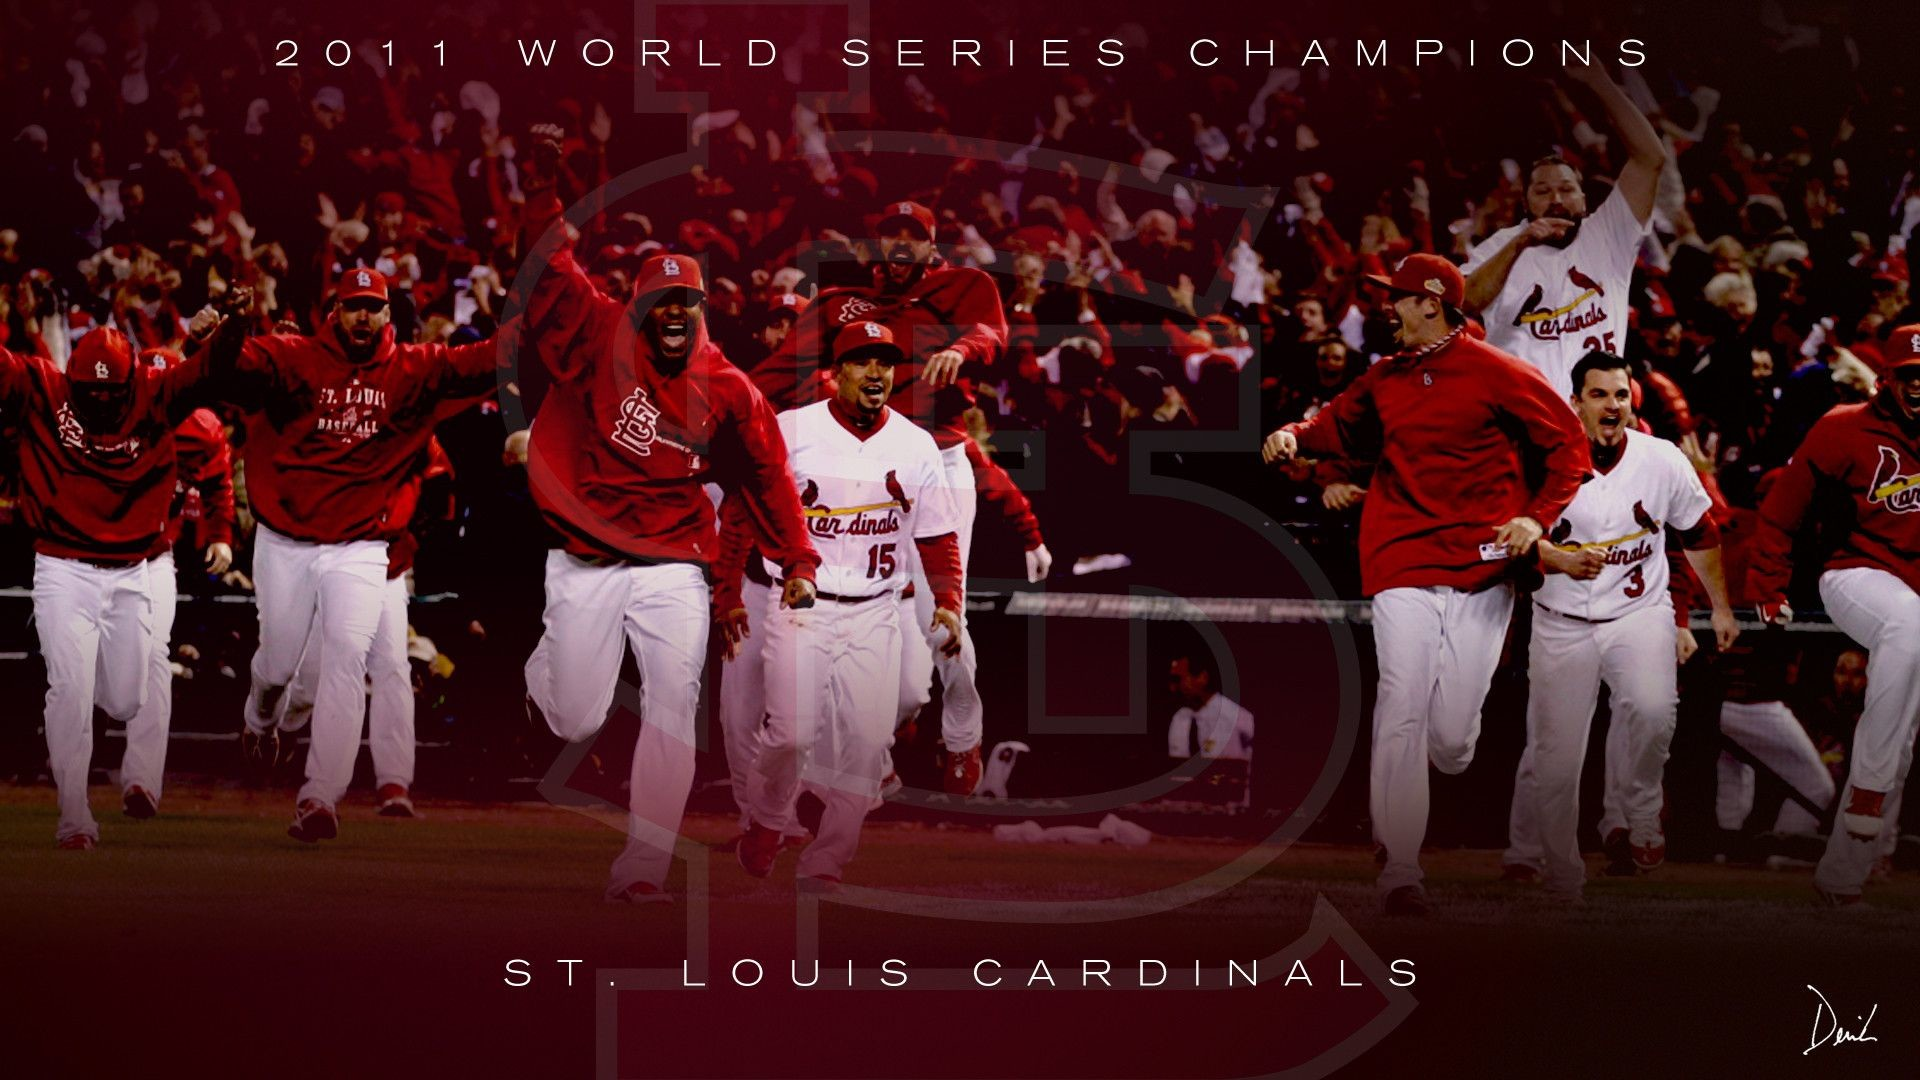 1920x1080 St. Louis Cardinals